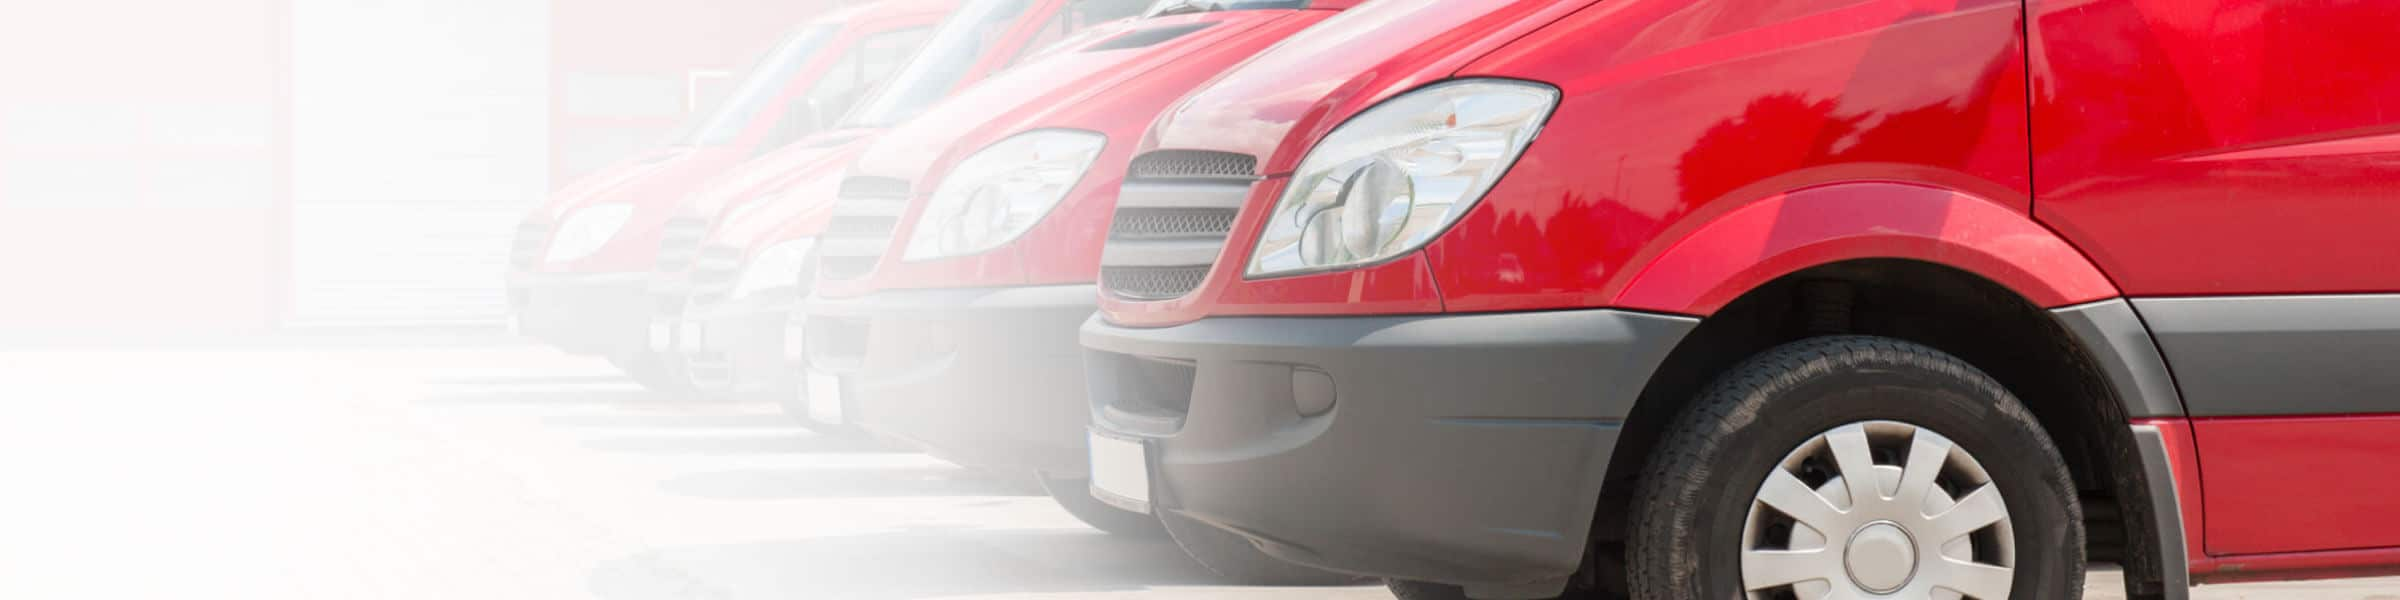 Commercial Business Motor Vehicle Insurance